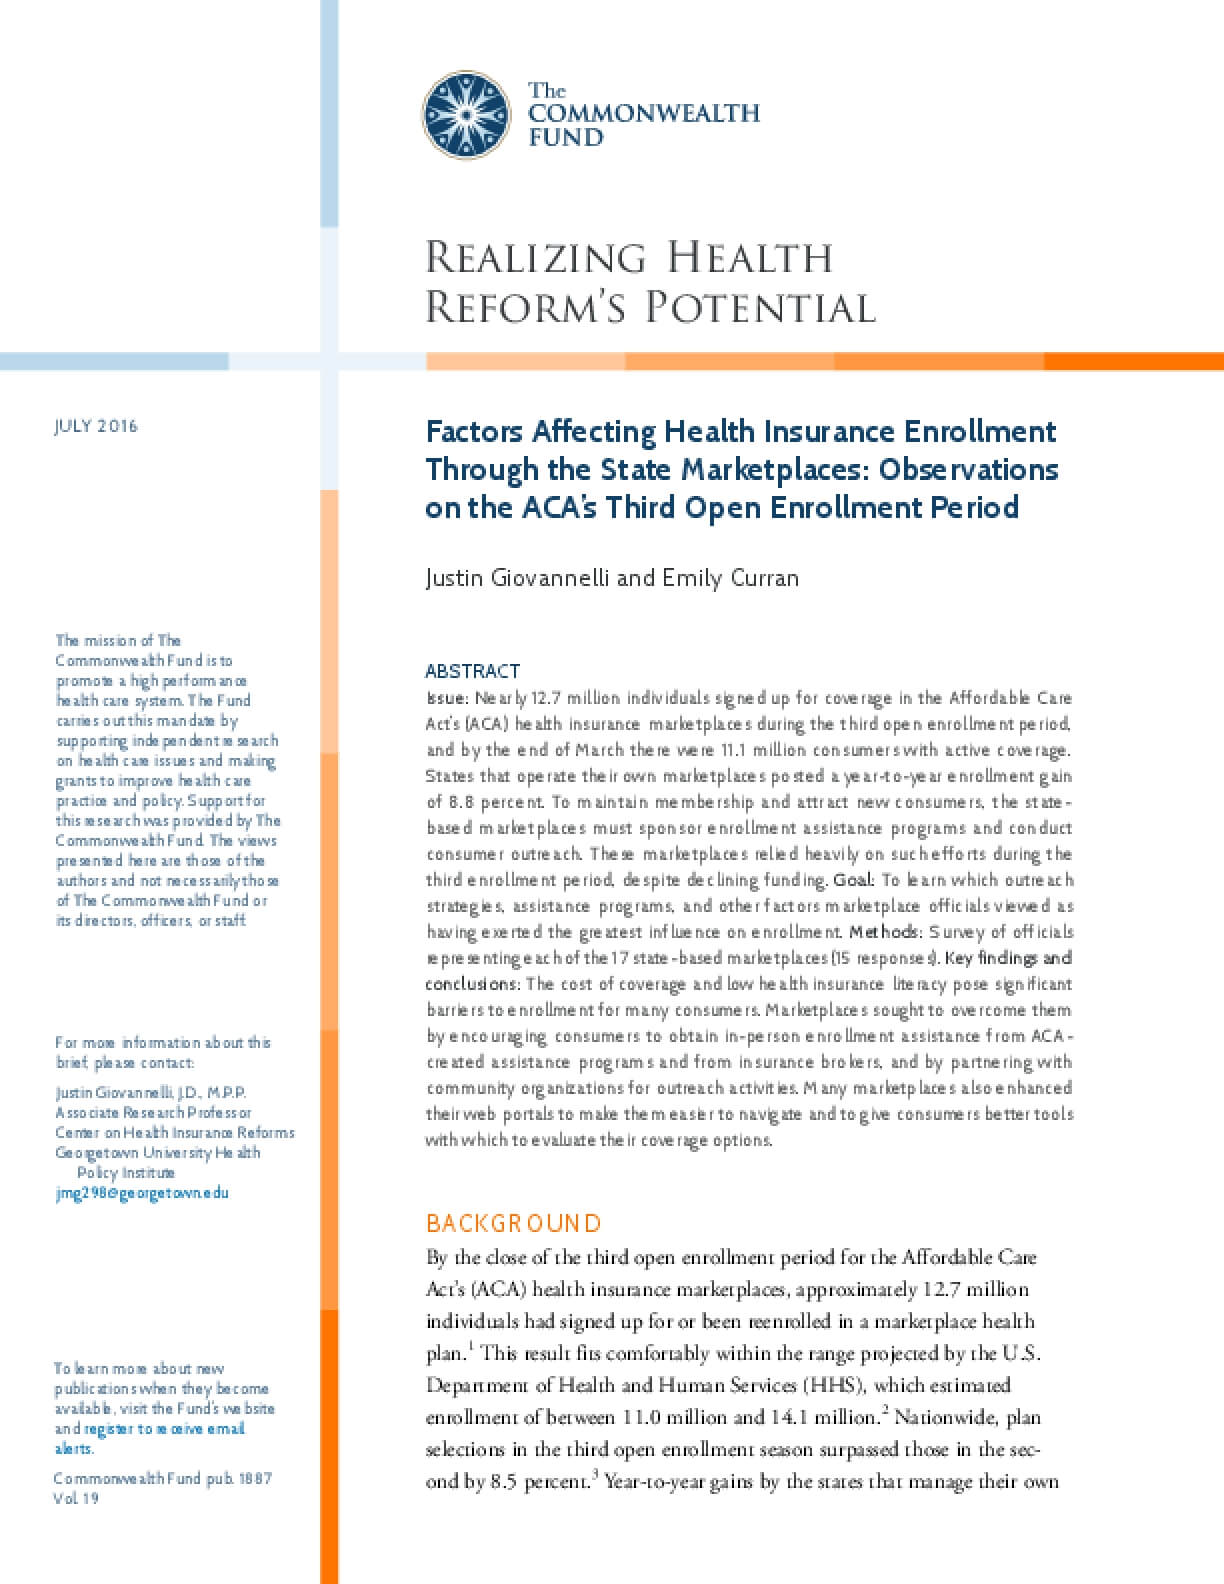 Realizing Health Reform's Potential: Factors Affecting Health Insurance Enrollment Through the State Marketplace - Observations on the ACA's Third Open Enrollment Period